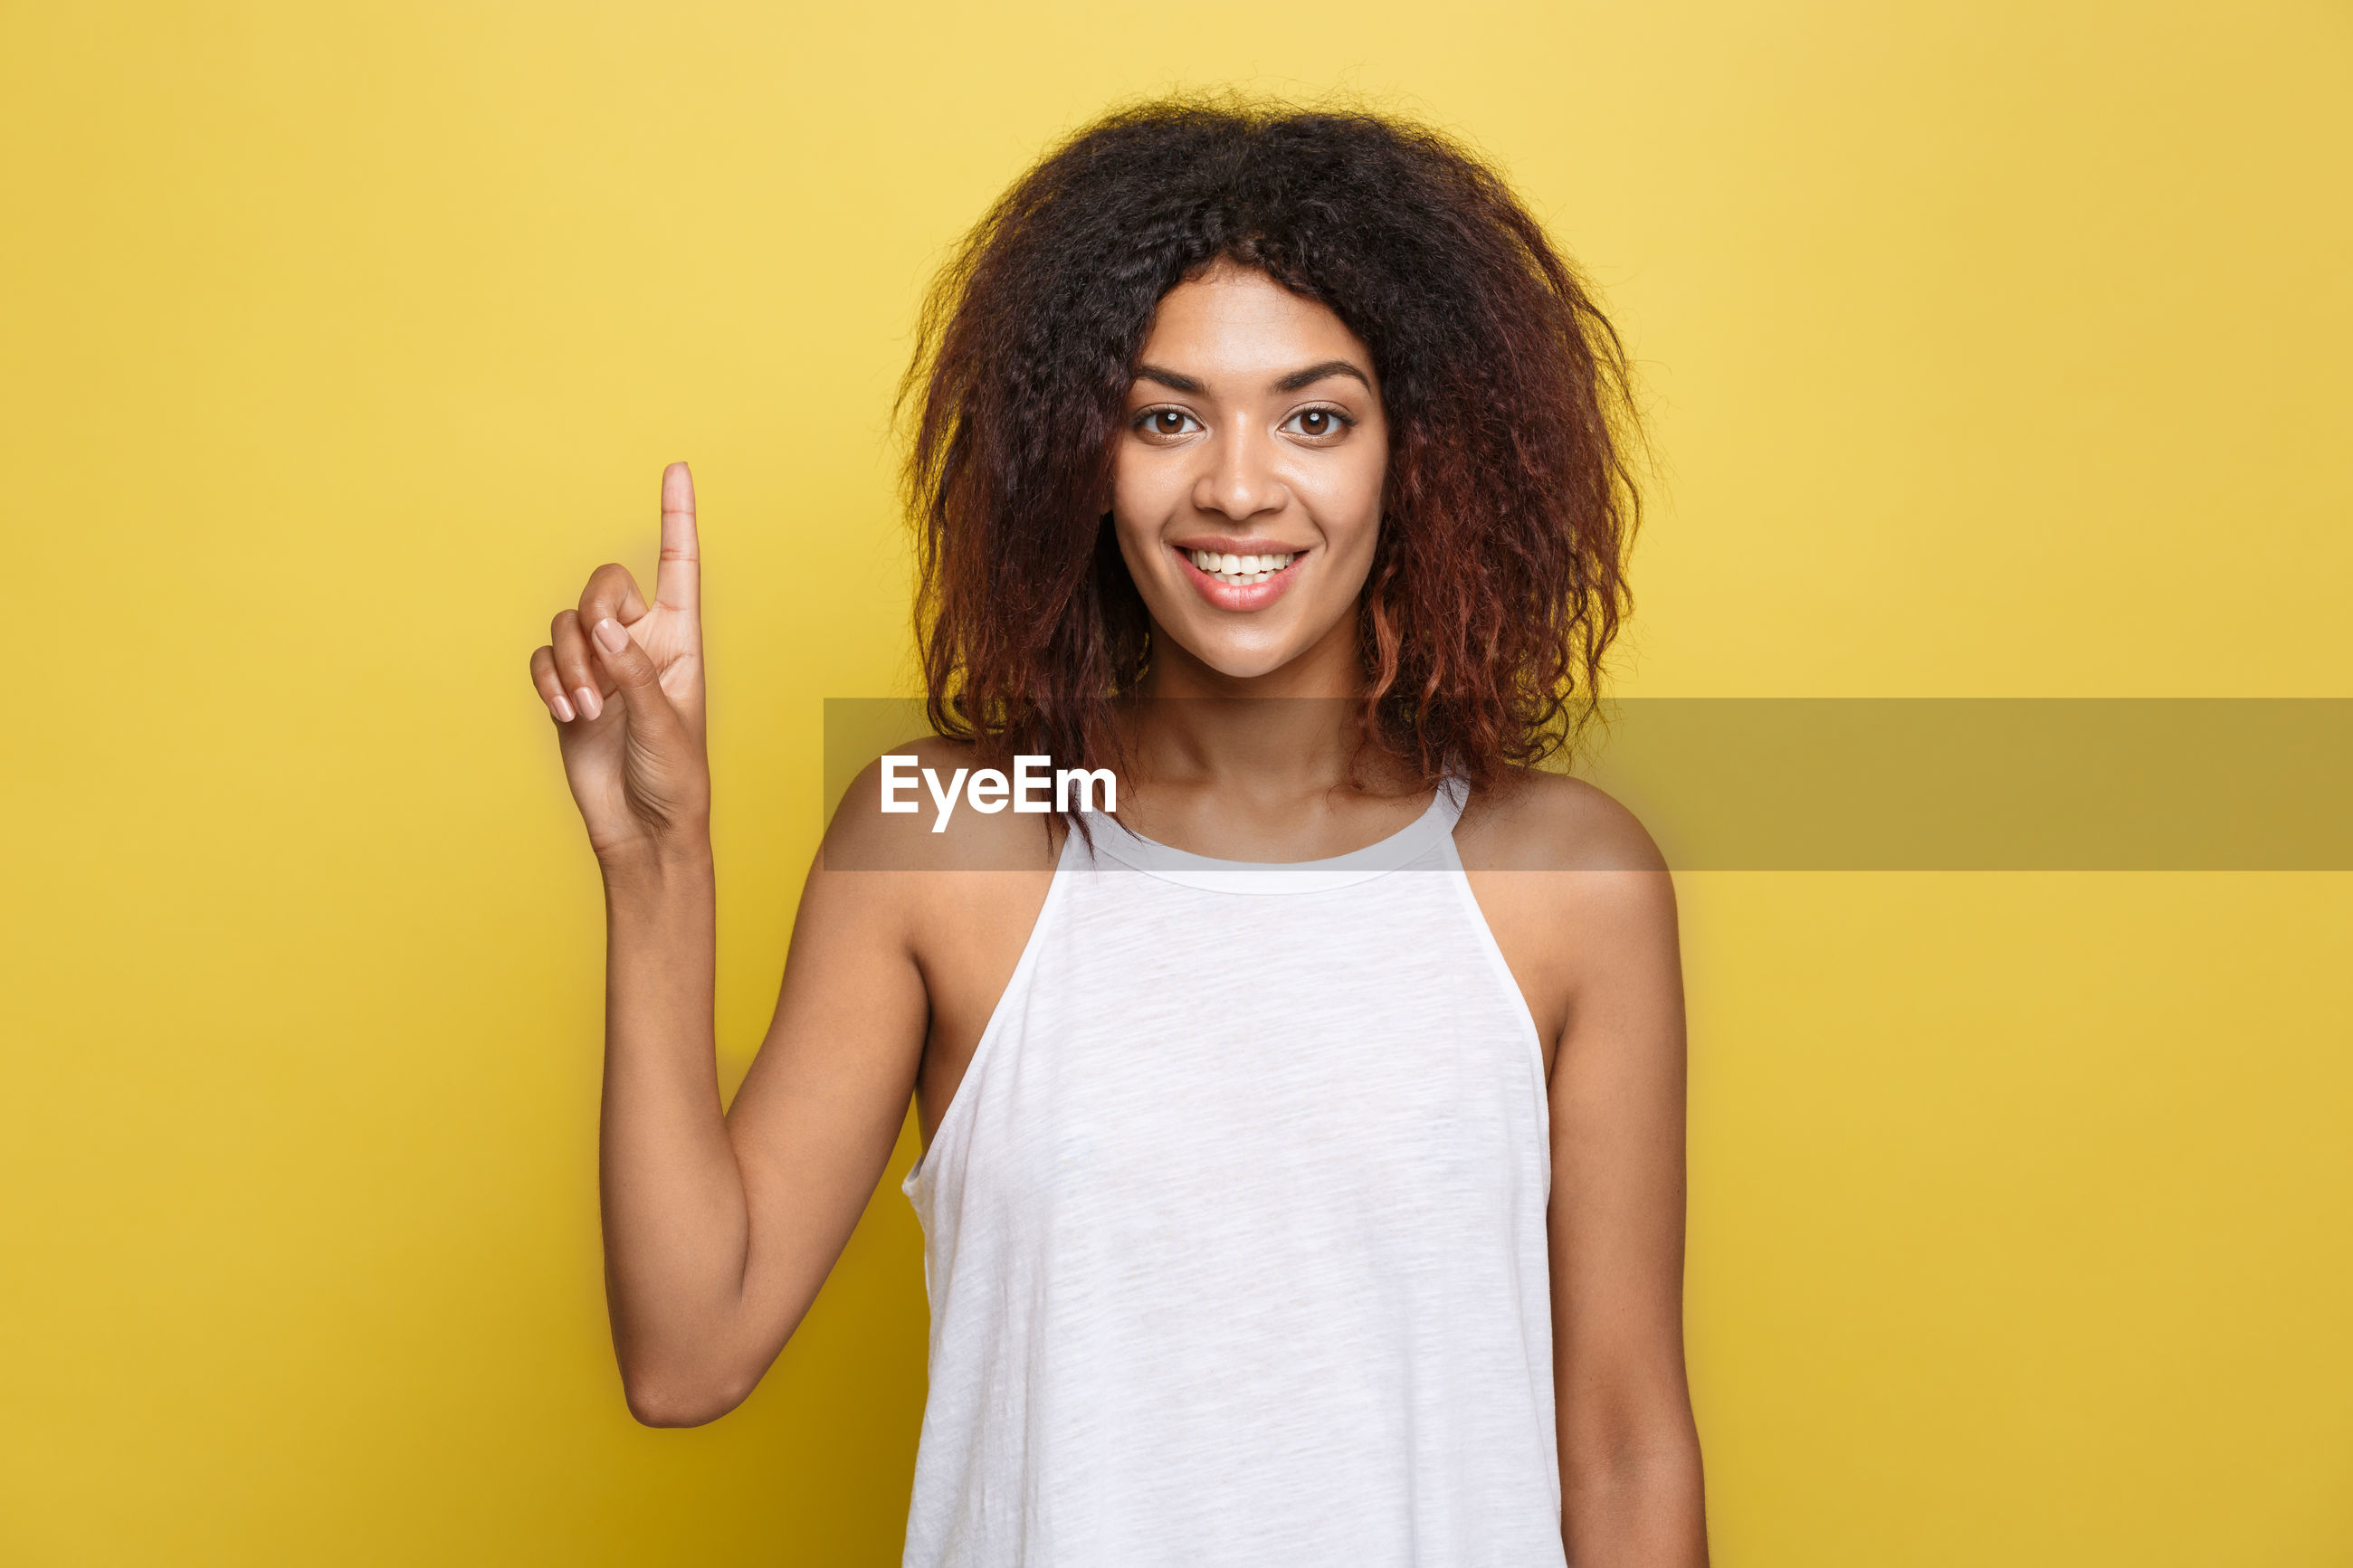 Portrait of smiling woman standing on yellow background